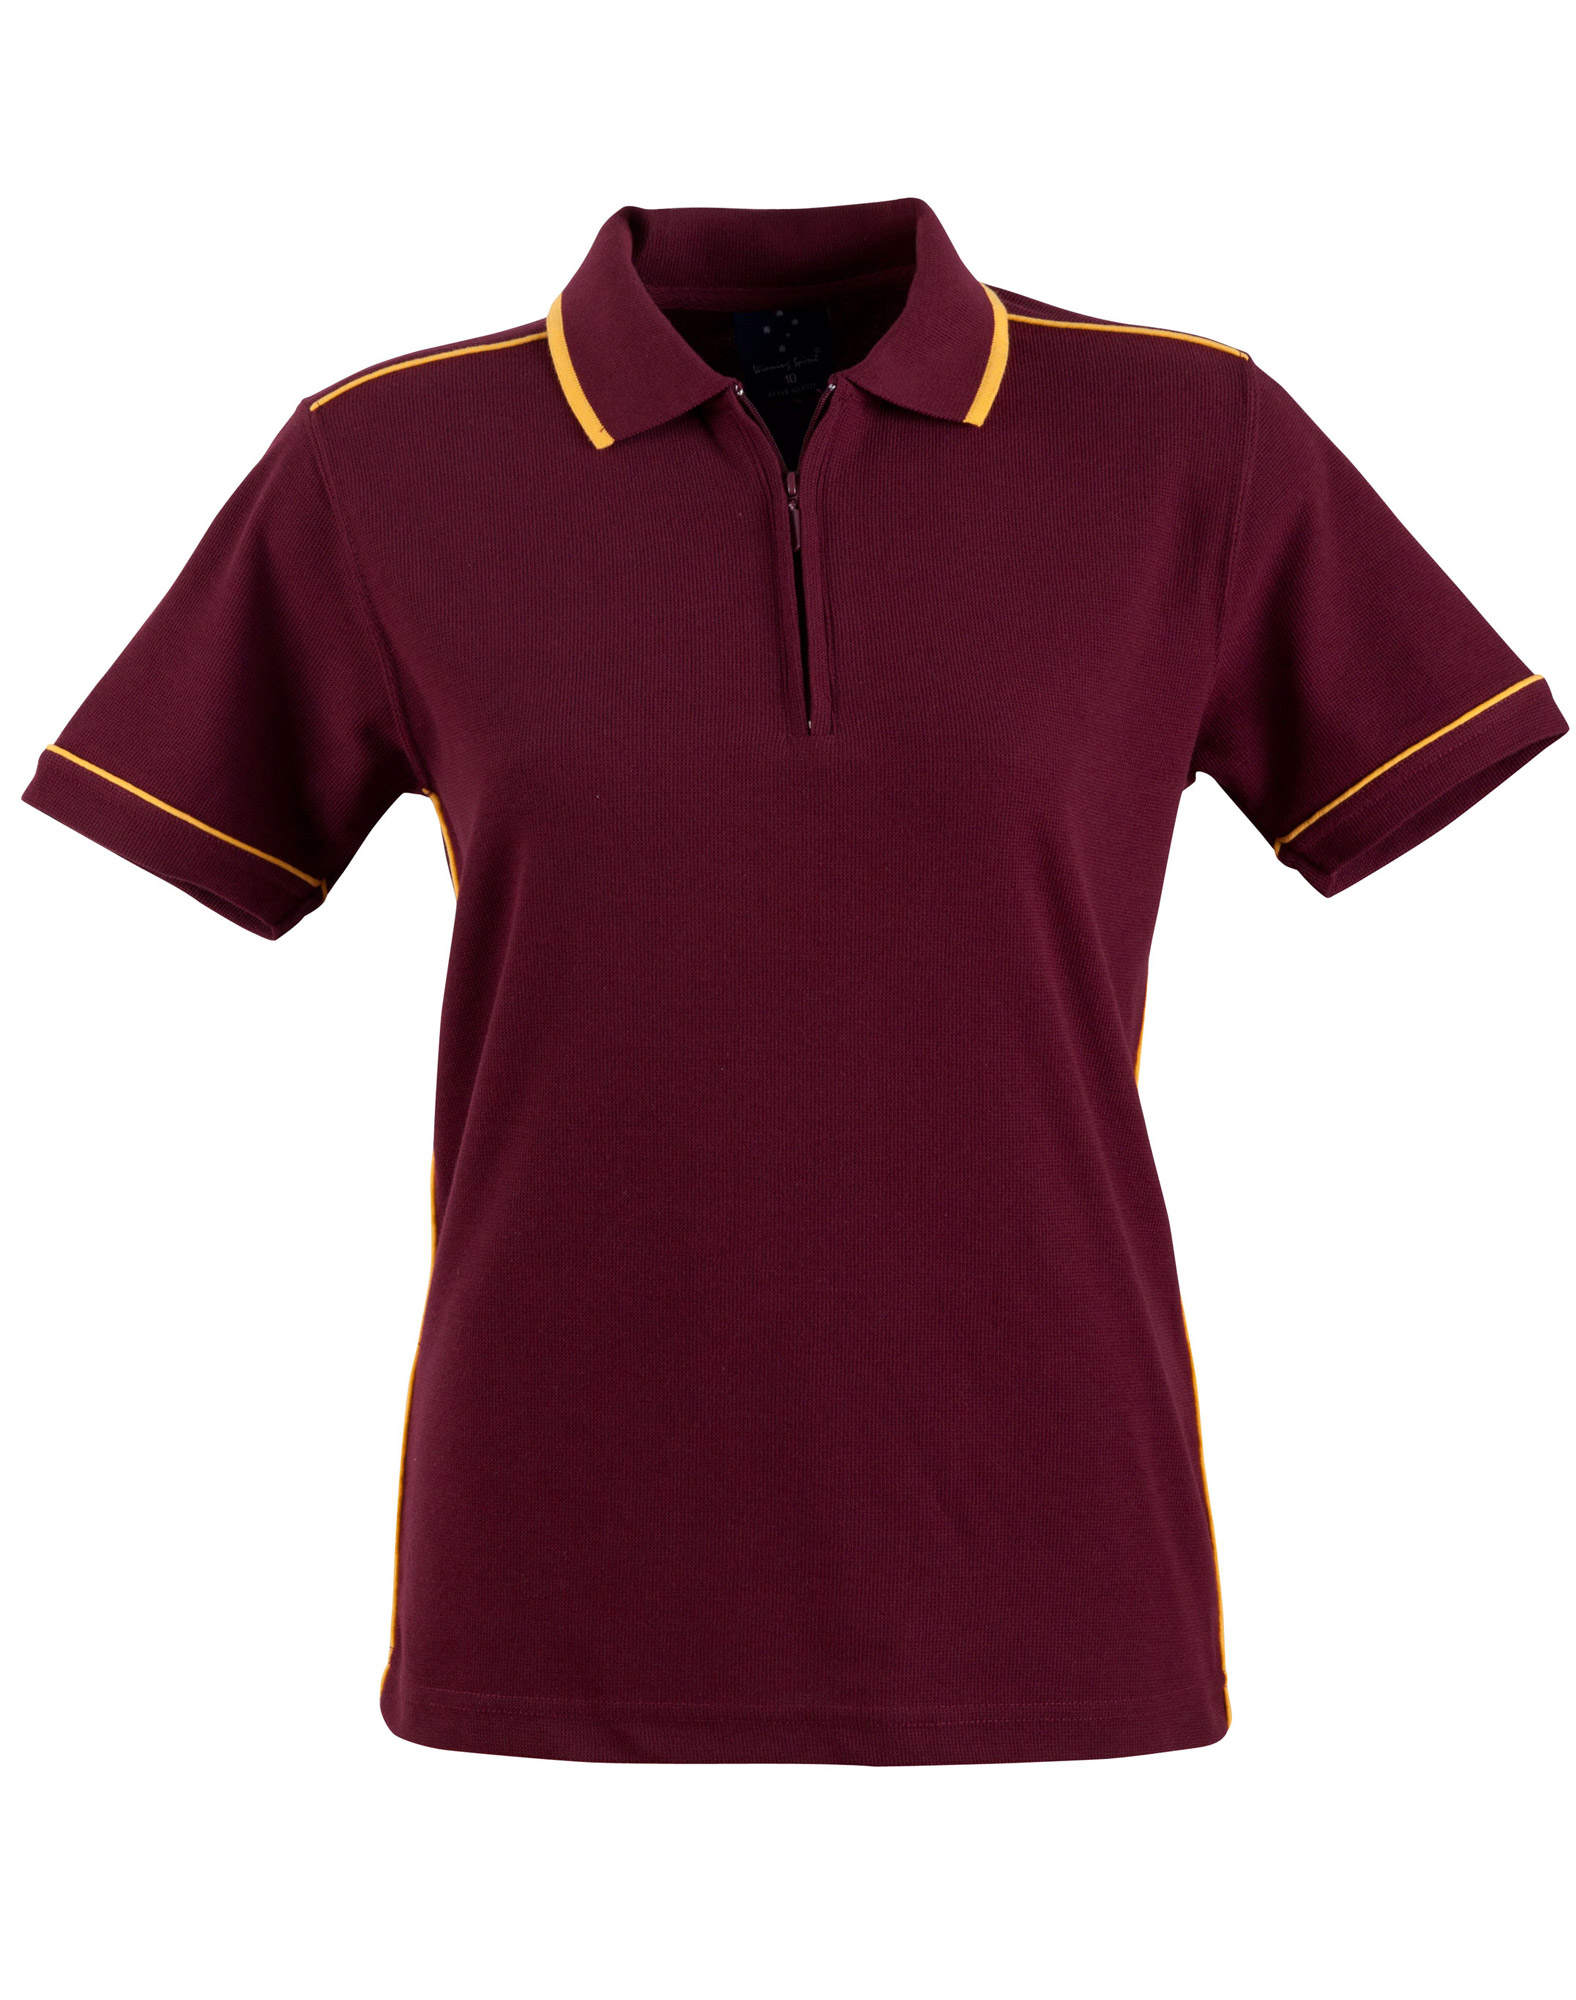 https://s3-ap-southeast-1.amazonaws.com/ws-imgs/POLOSHIRTS/PS17_Maroon.Gold_front_l.jpg